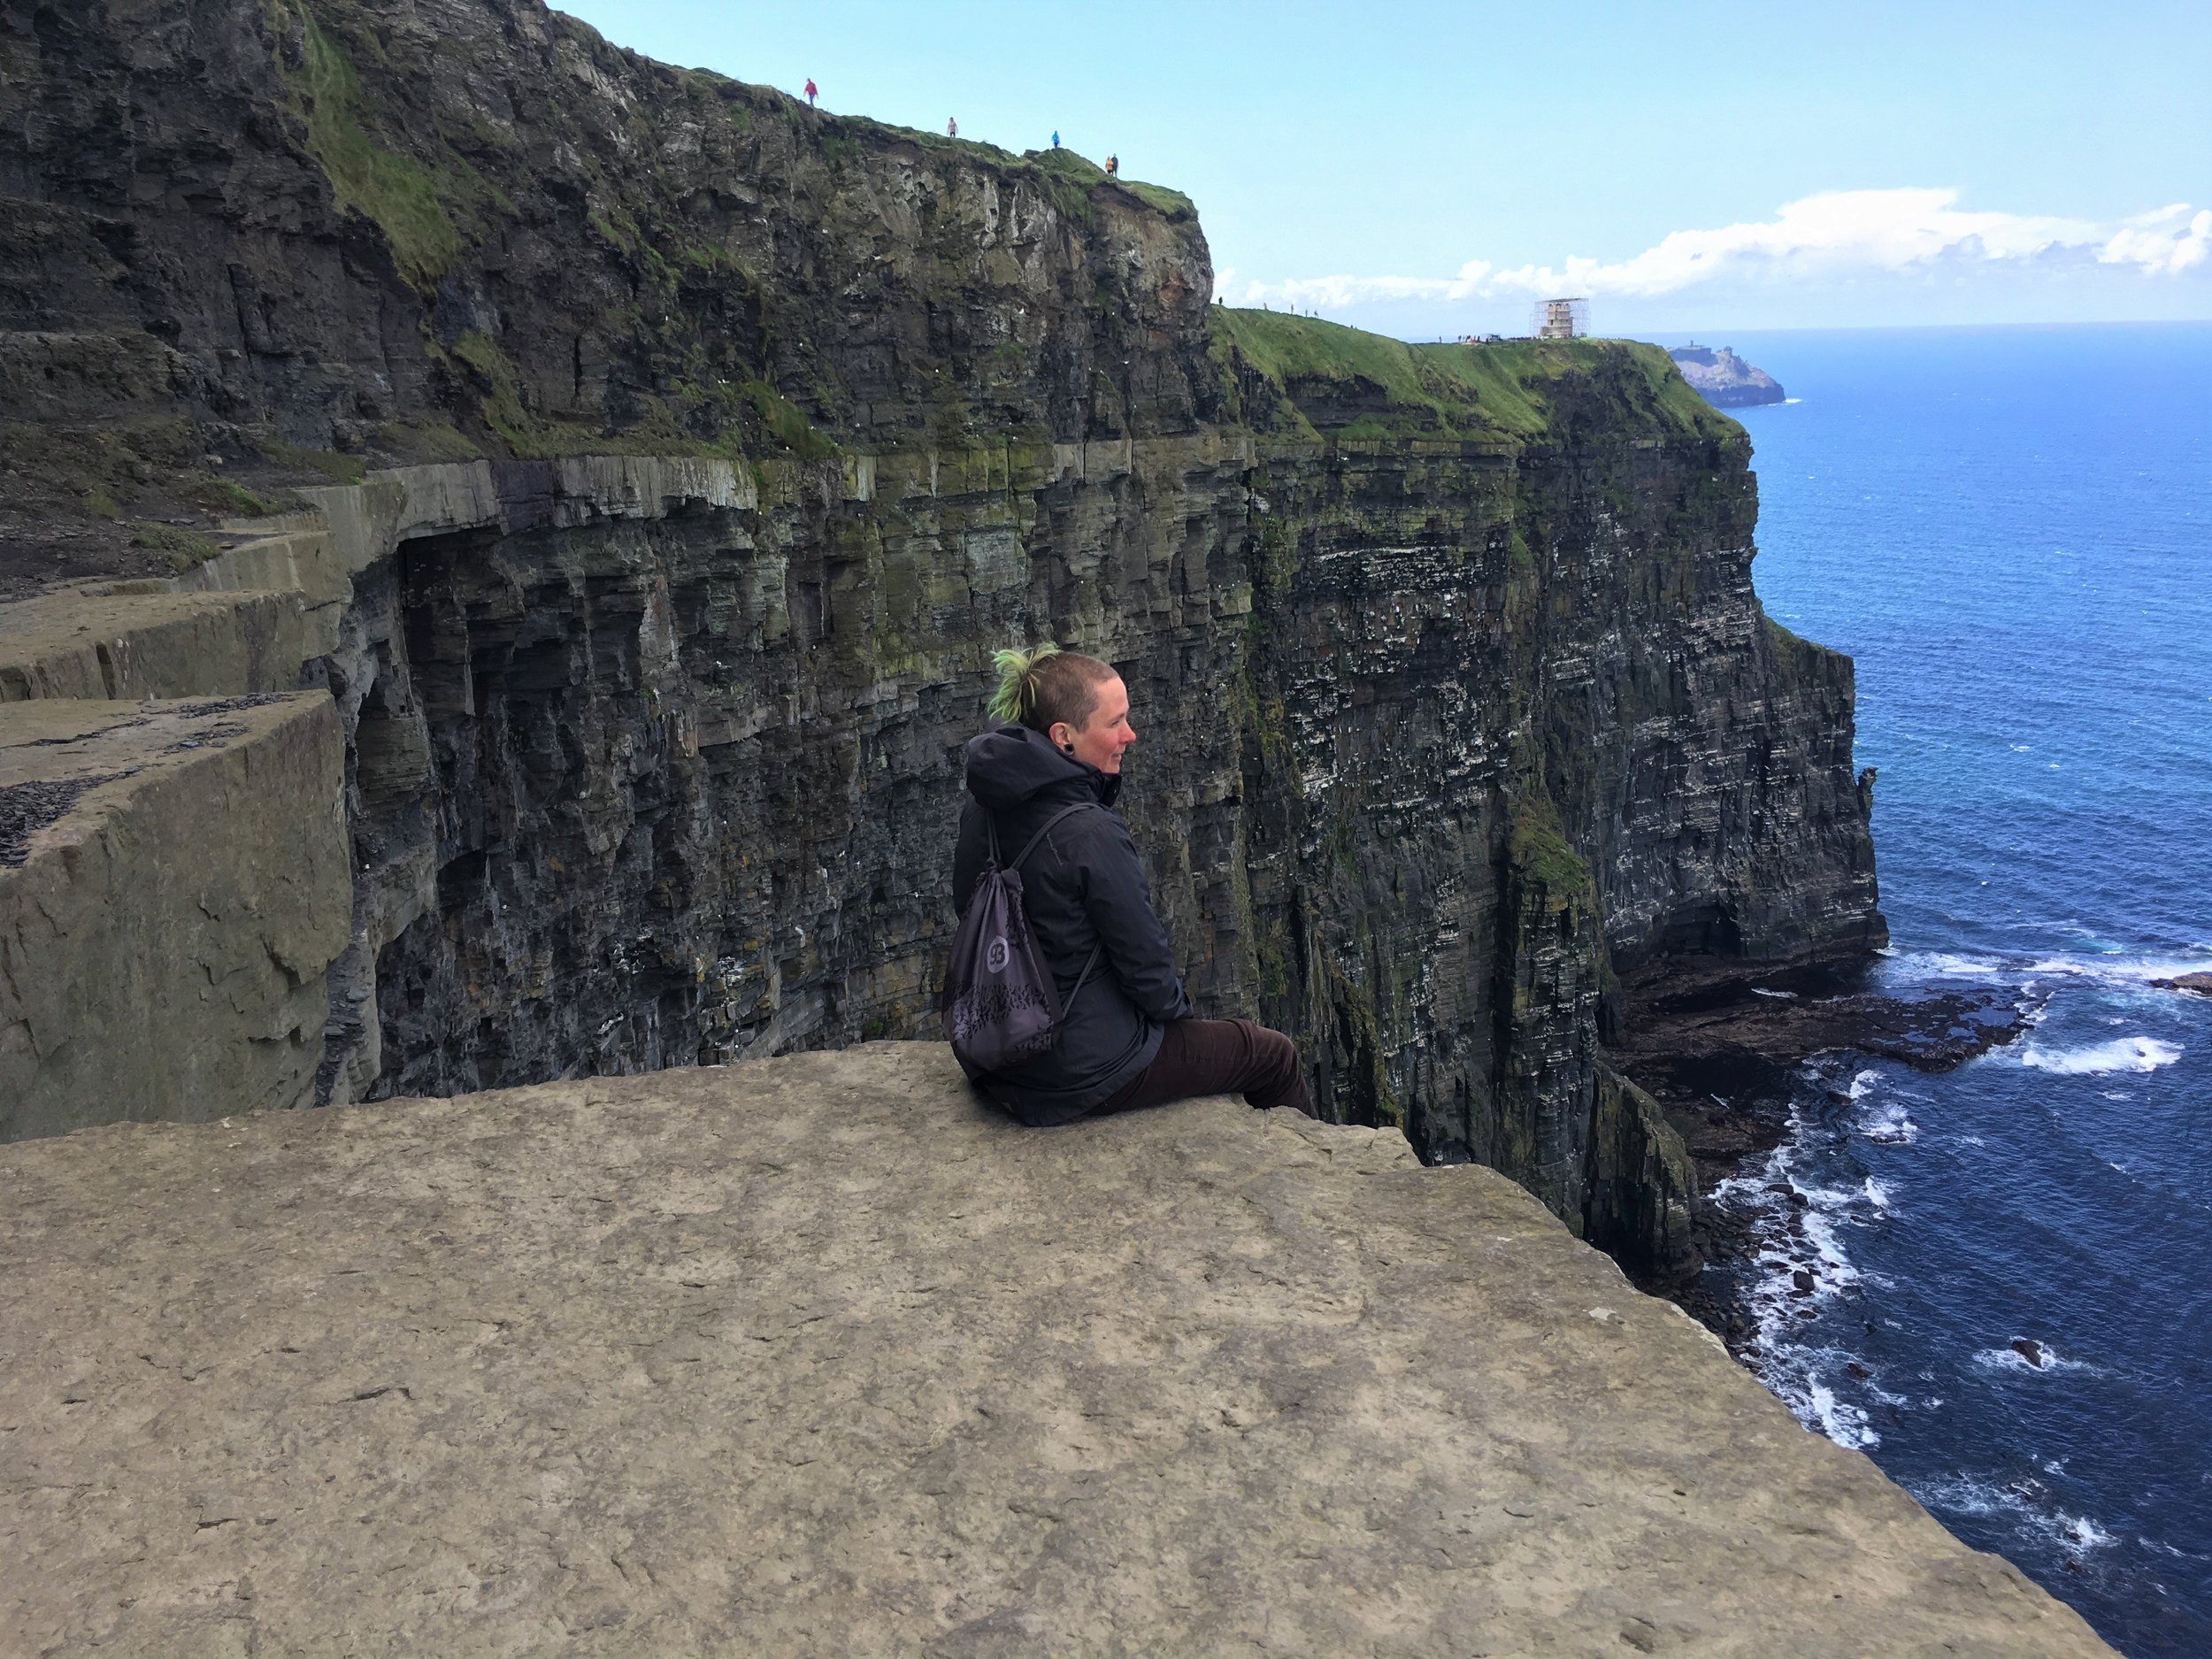 Here's me, fucking terrified sitting on this edge at the Cliffs of Moher in Ireland. This was no fakey ledge either. It was a legit, straight drop down far...really, really.. really  far. Those white patches on the cliff-side behind me are hundreds (yes, hundreds) of seagulls. Buying the Nord was about as scary as this.